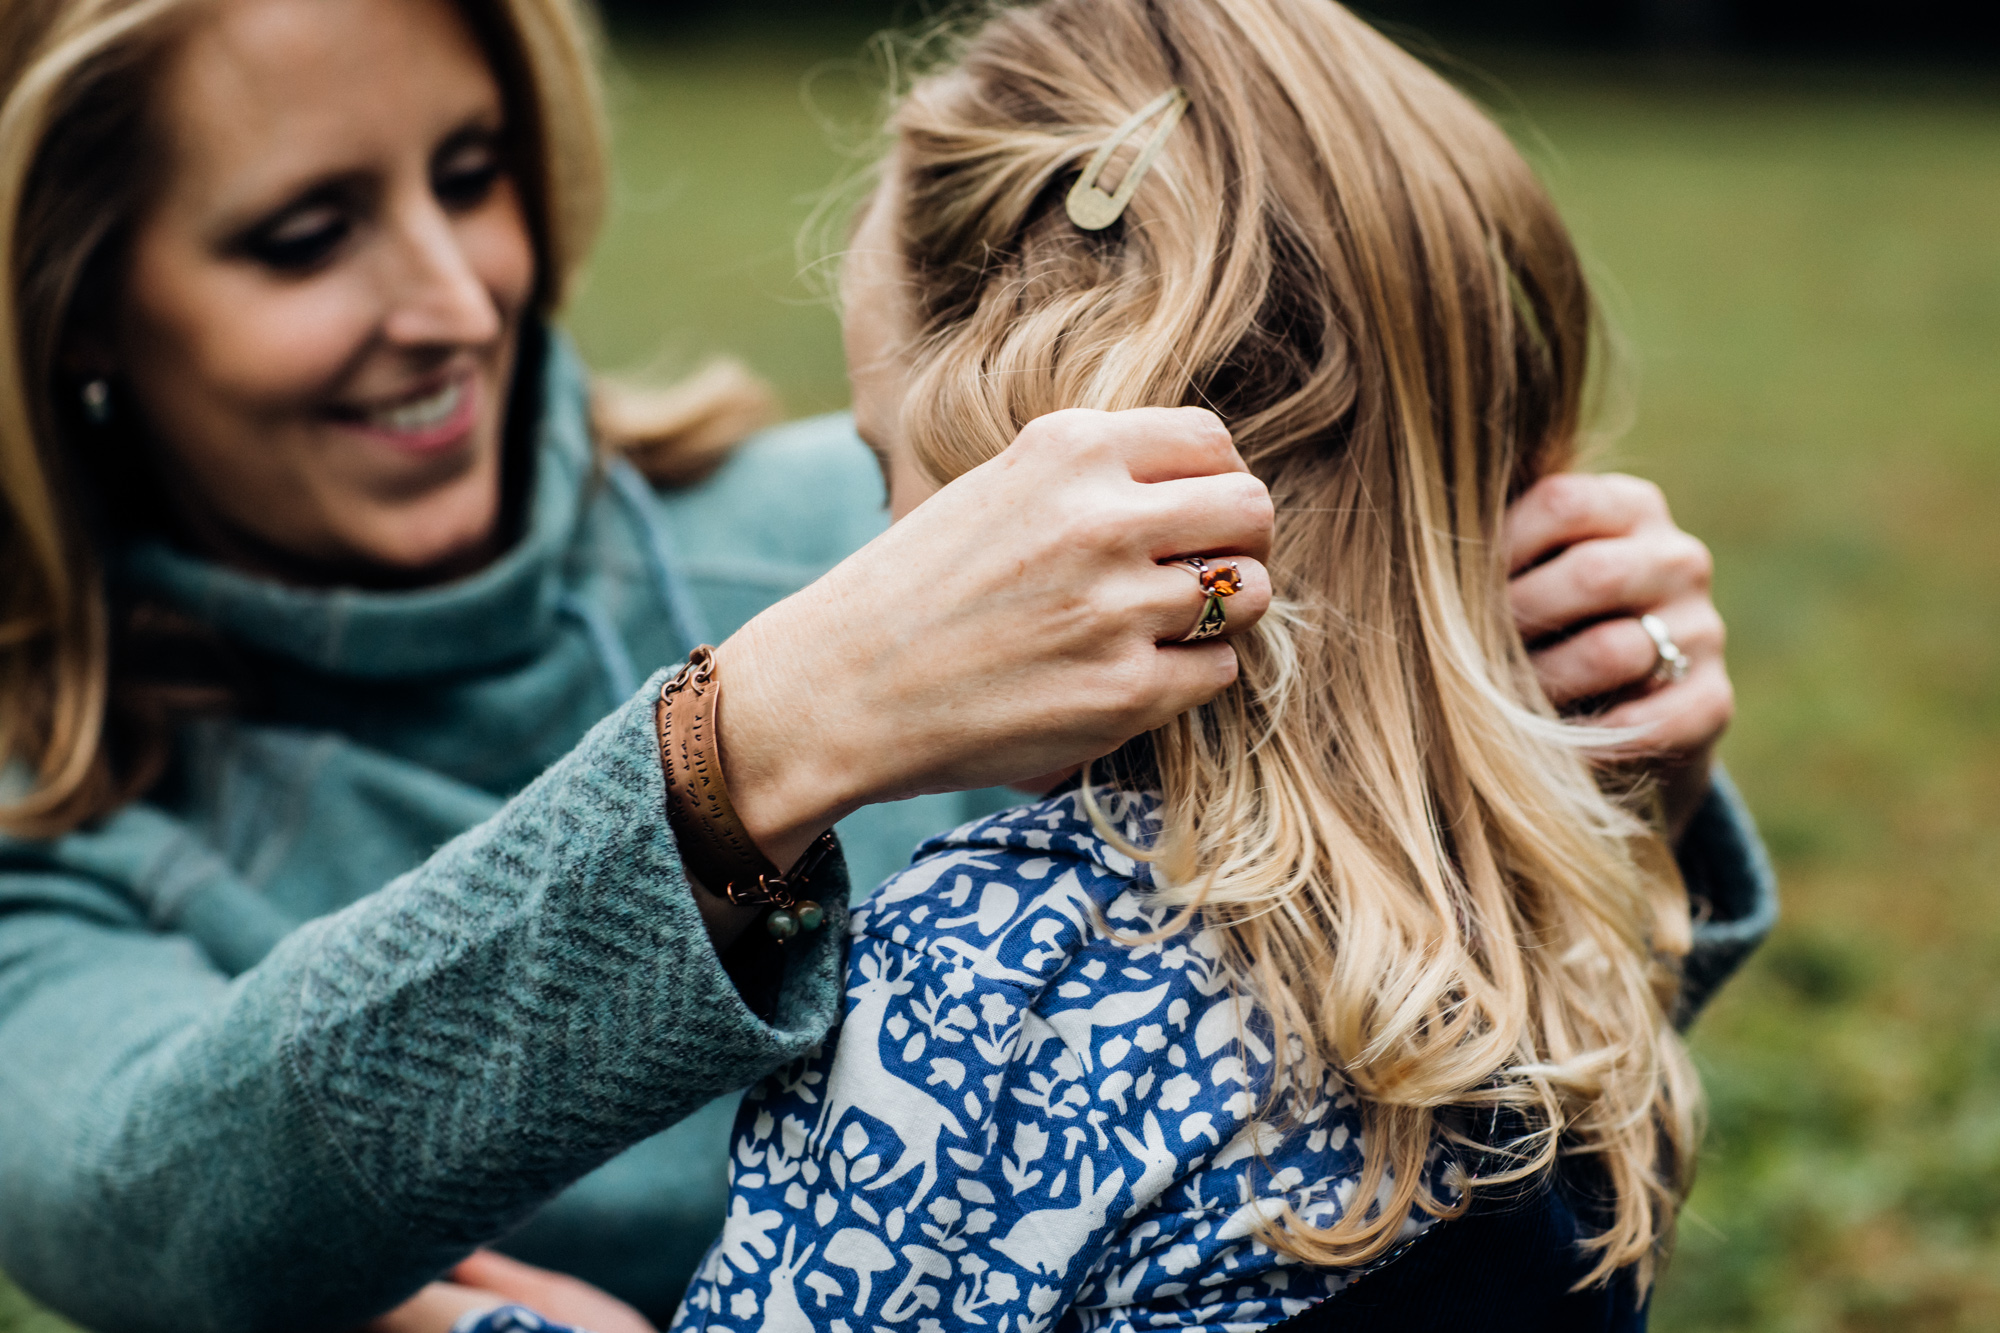 Mom playing with daughters hair